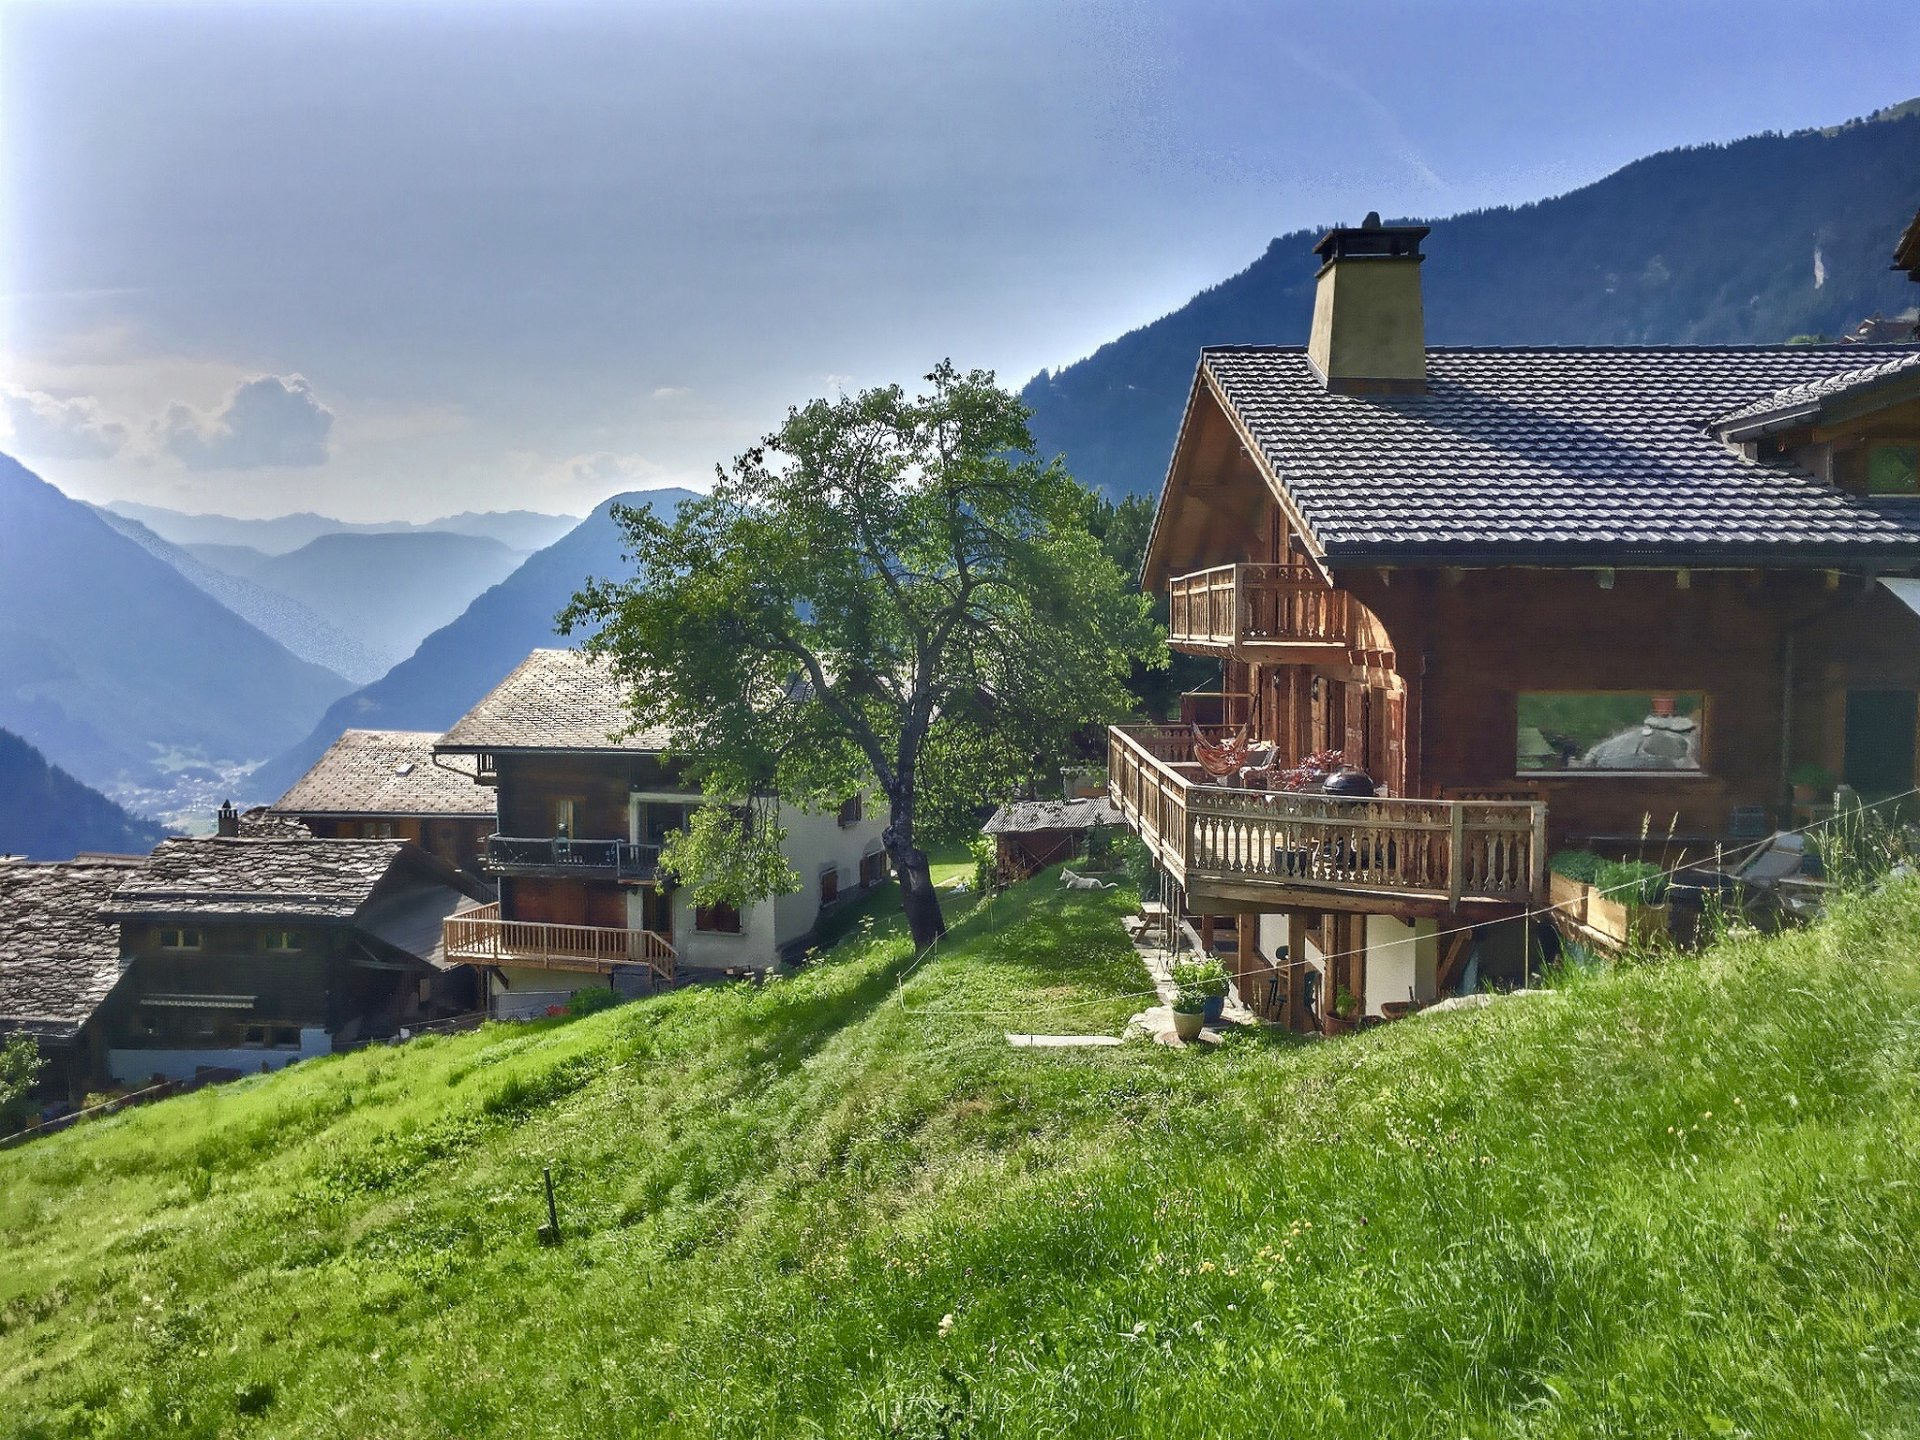 Family Chalet in Switzerland, with a panoramic view of the Alps